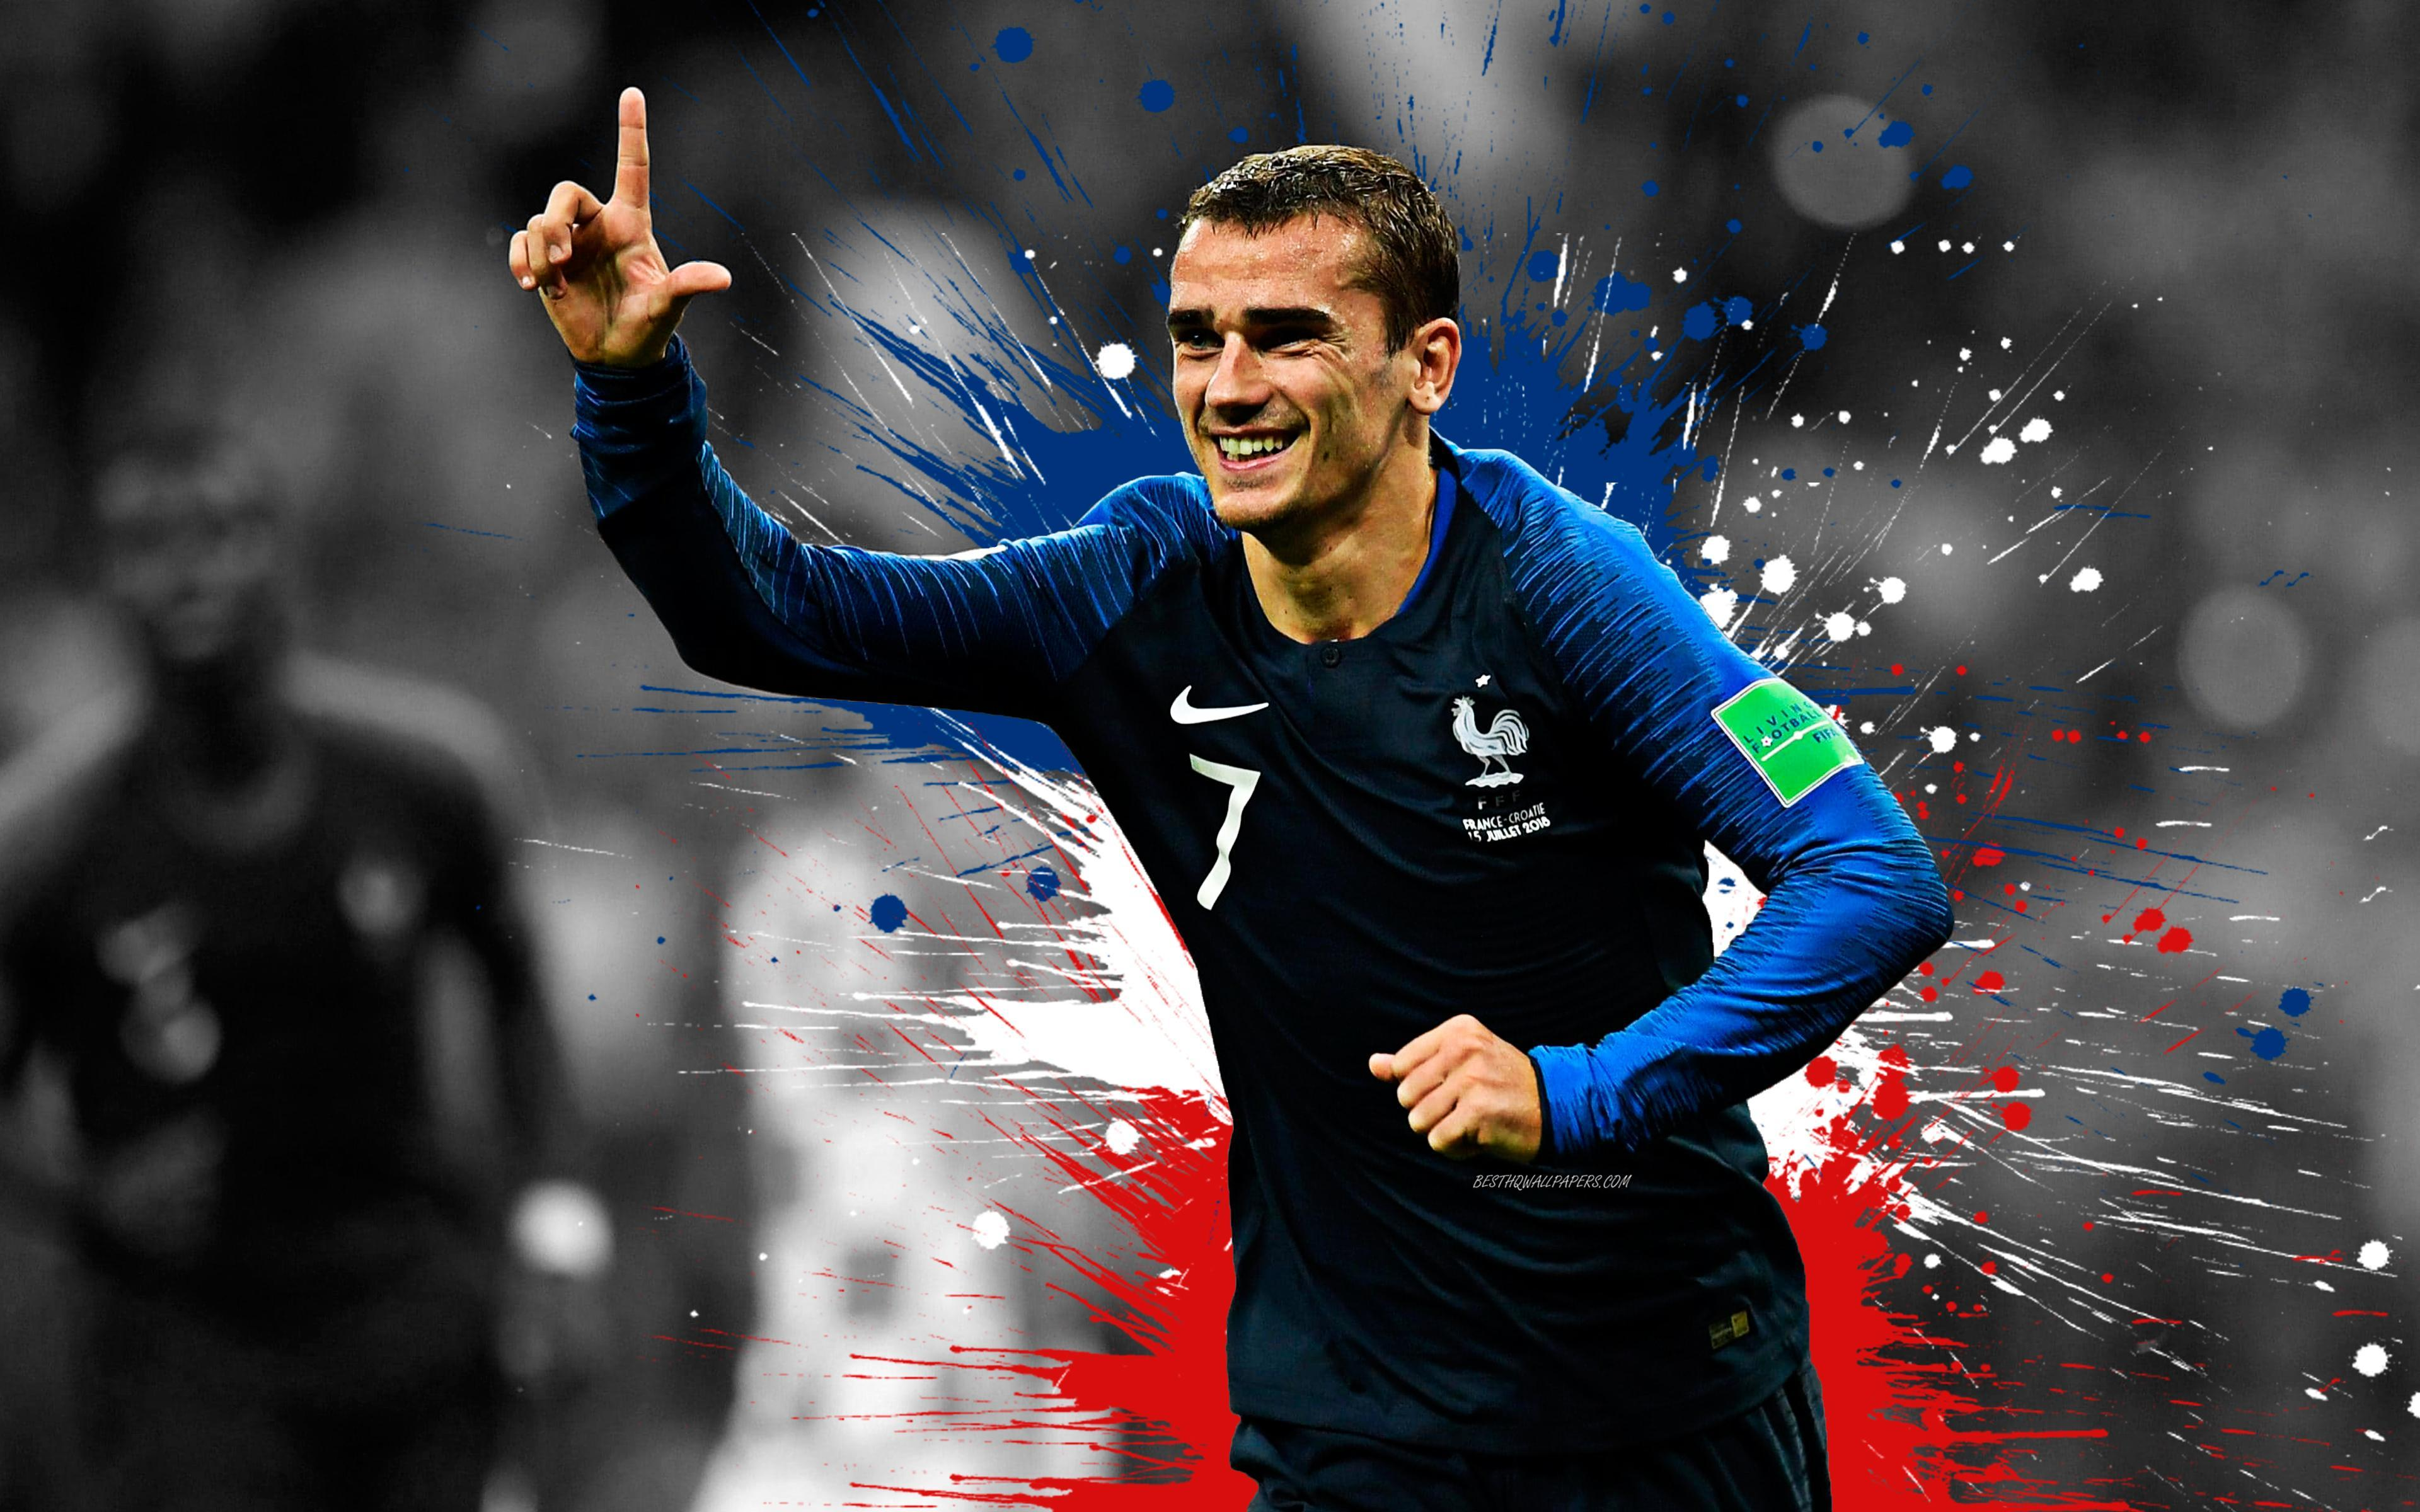 02/07/2021· kylian mbappe and antoine griezmann clashed during france's euro 2020 campaign. France National Football Team 2019 Wallpapers - Wallpaper Cave